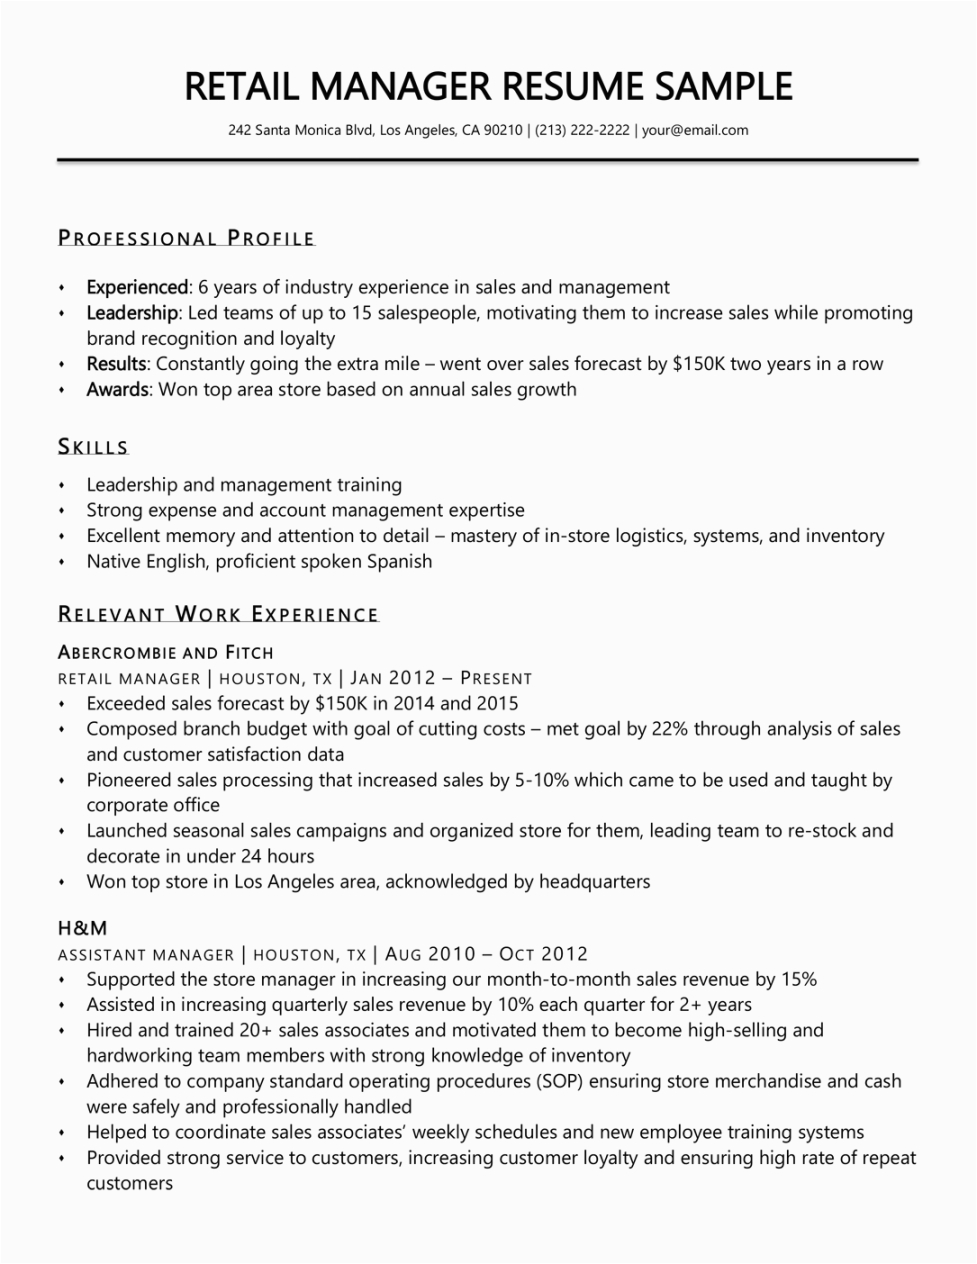 Retail Management Resume Examples and Samples Retail Management Resume Template